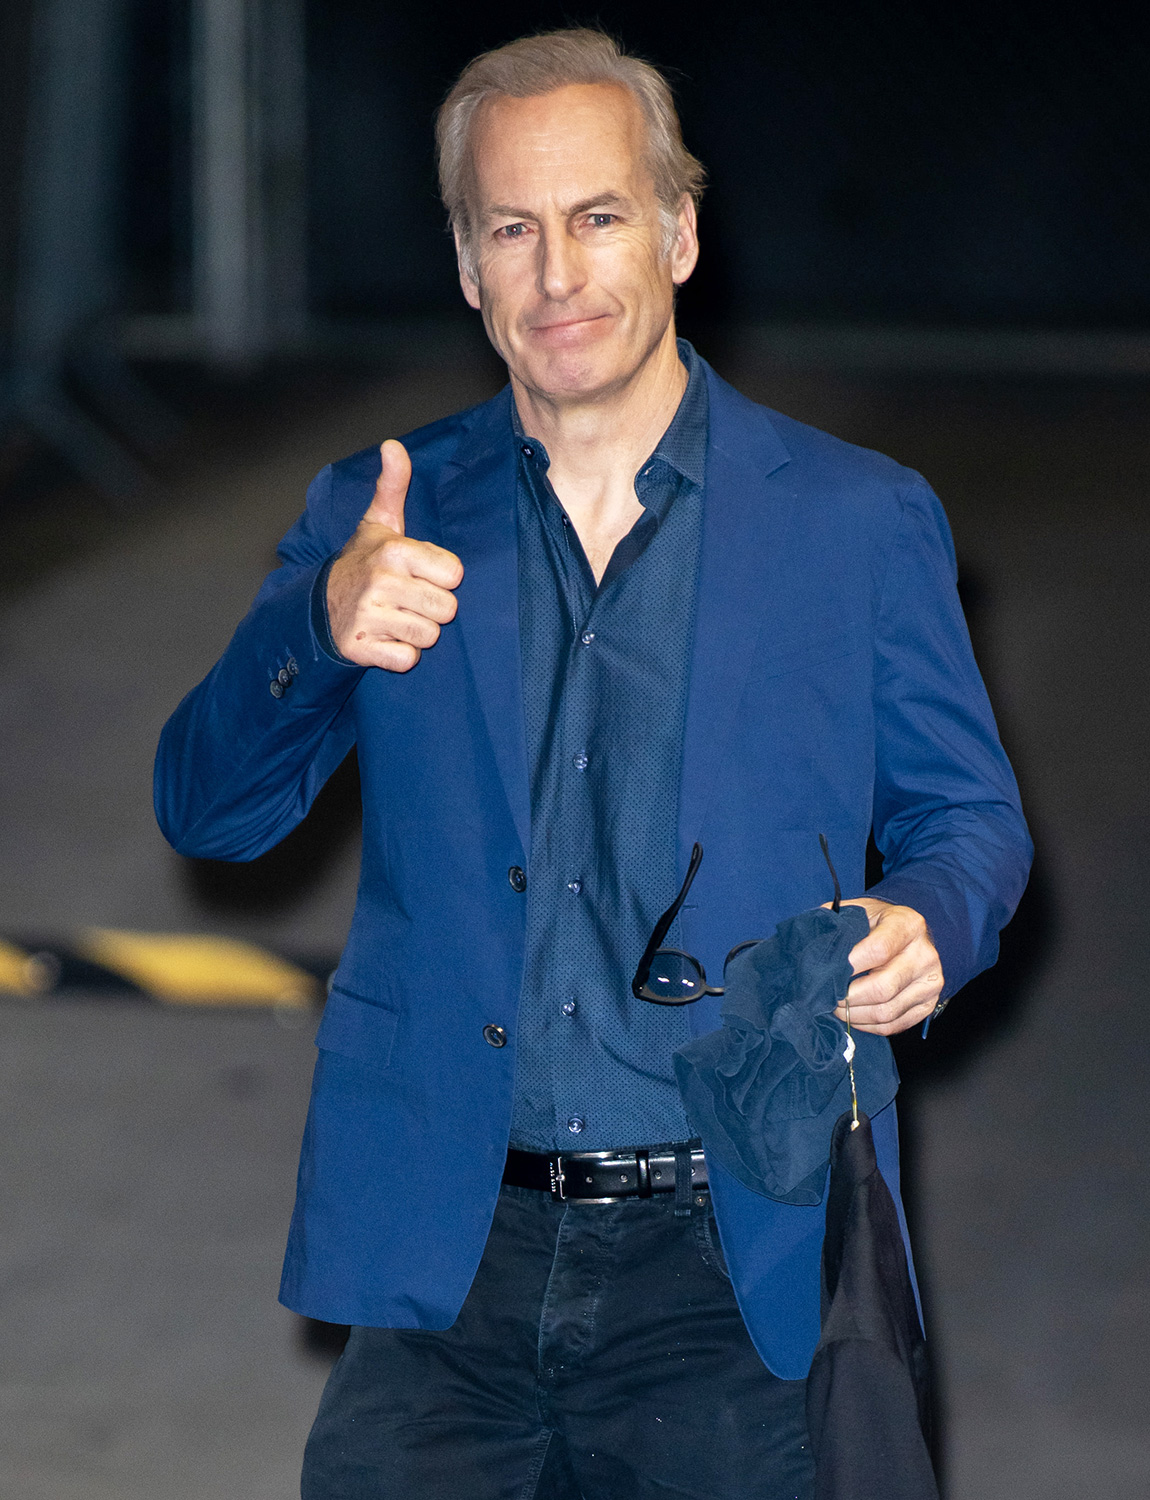 Bob Odenkirk is seen at 'Jimmy Kimmel Live' on February 26, 2020 in Los Angeles, California